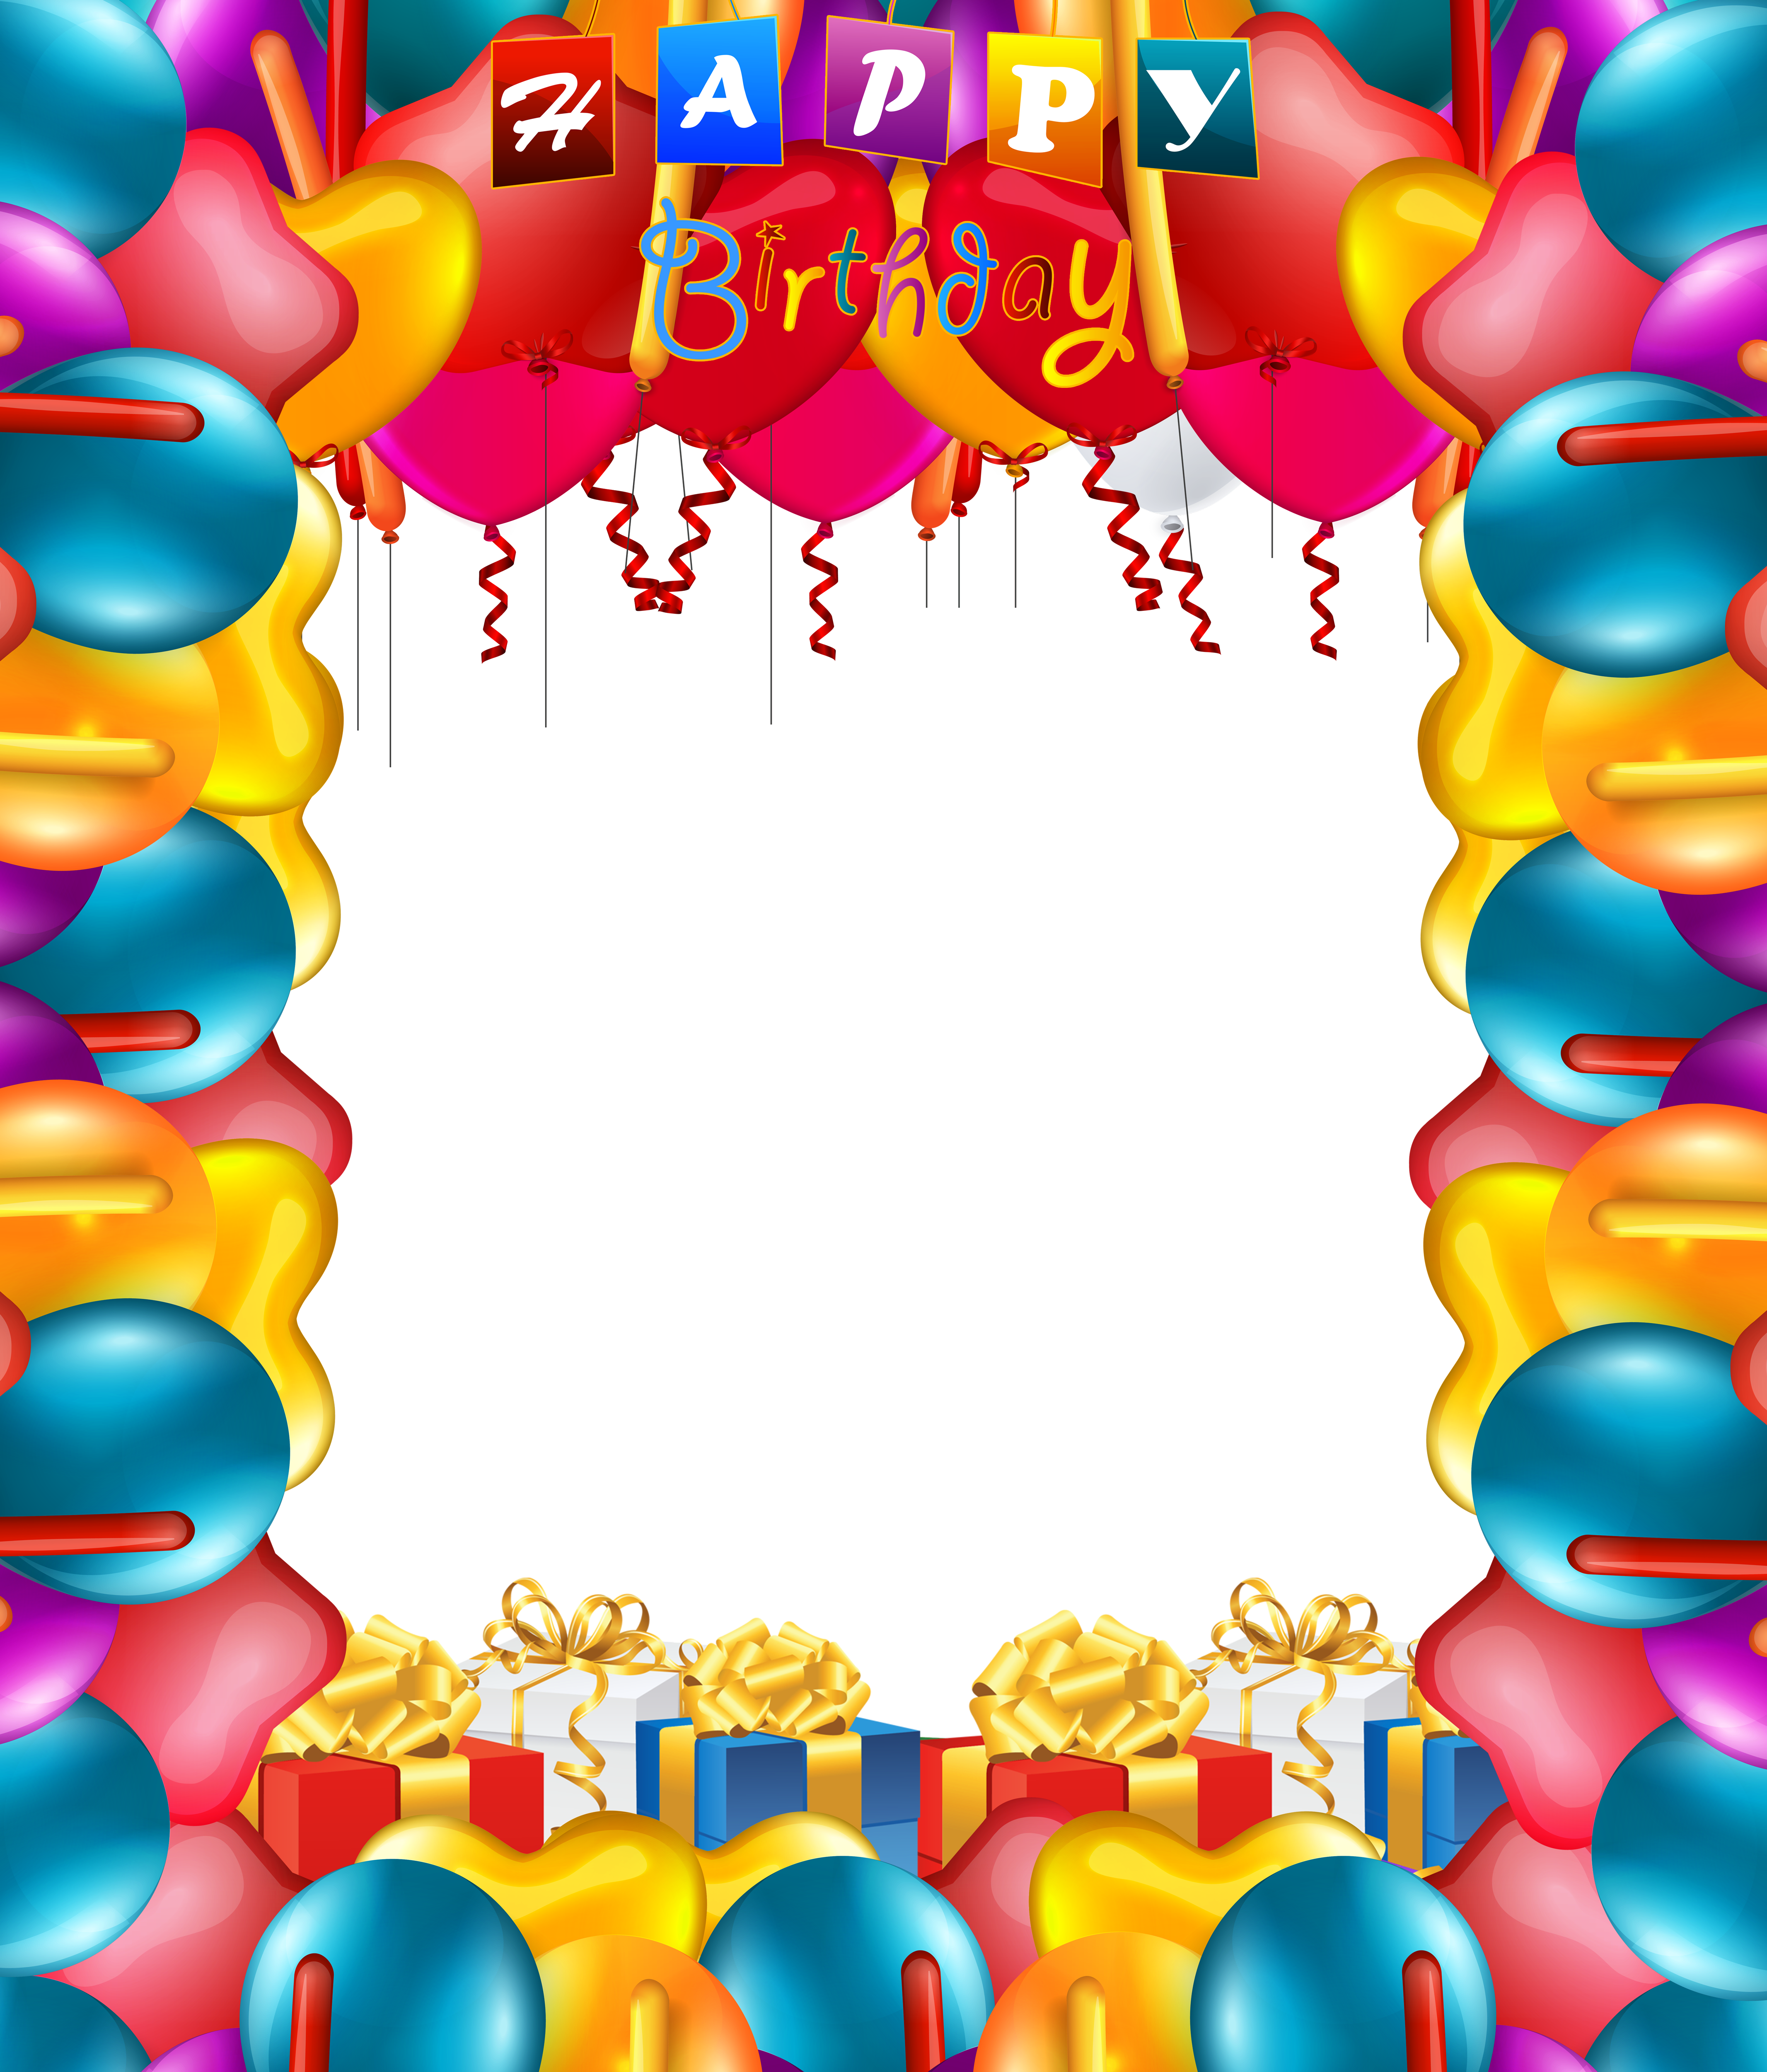 Party frame png. Happy birthday balloons transparent